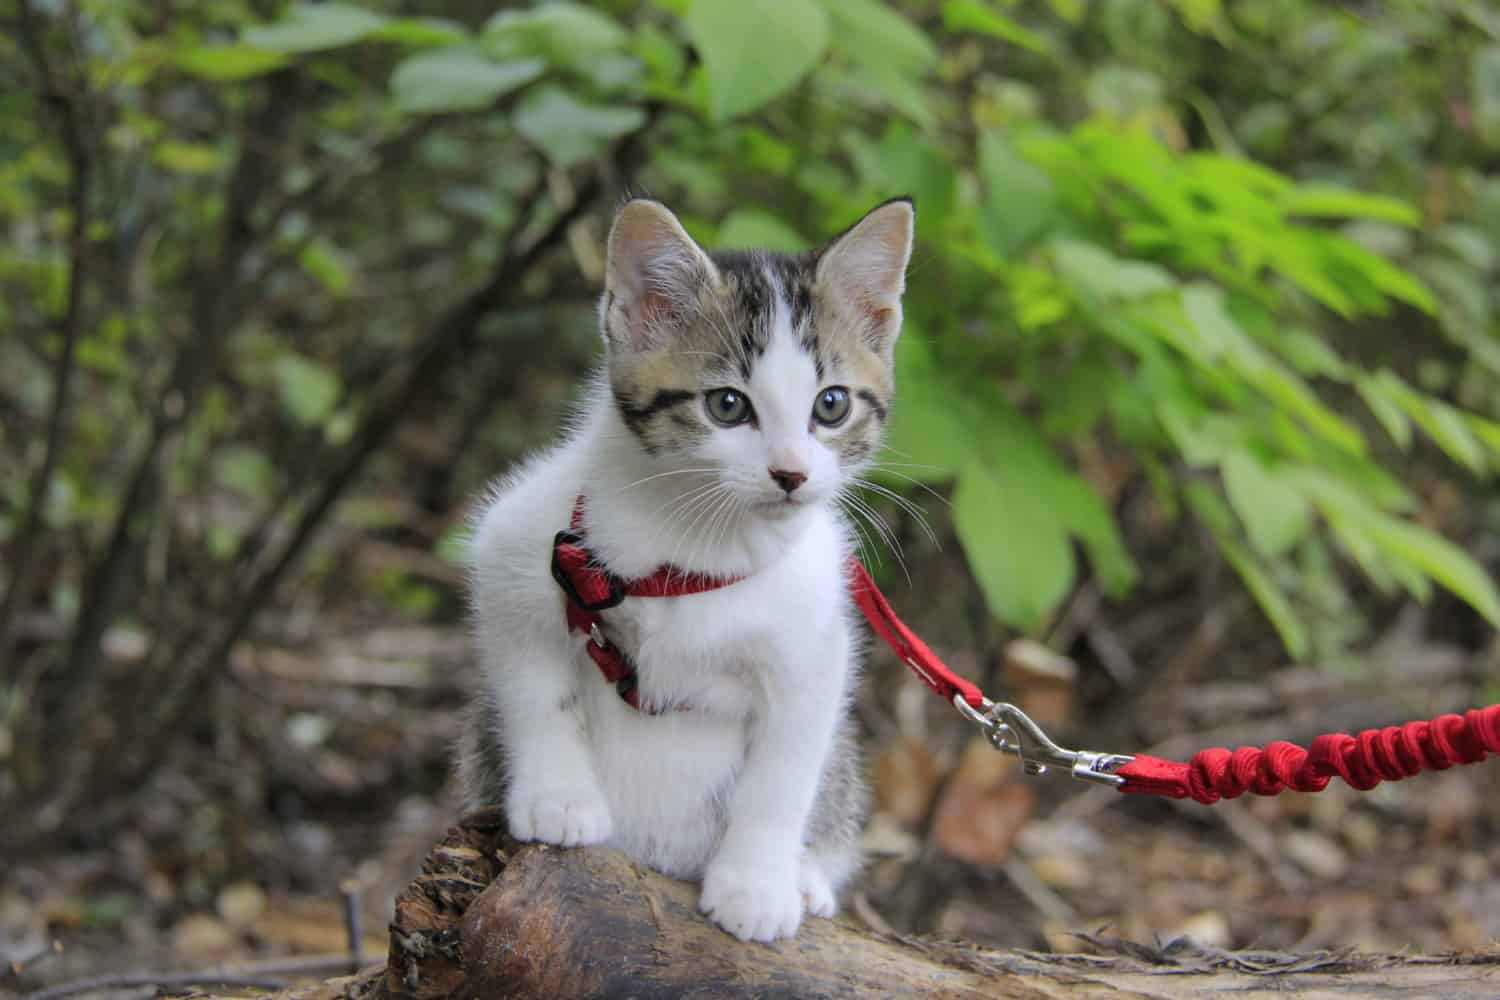 Traveling cat in a small red harness